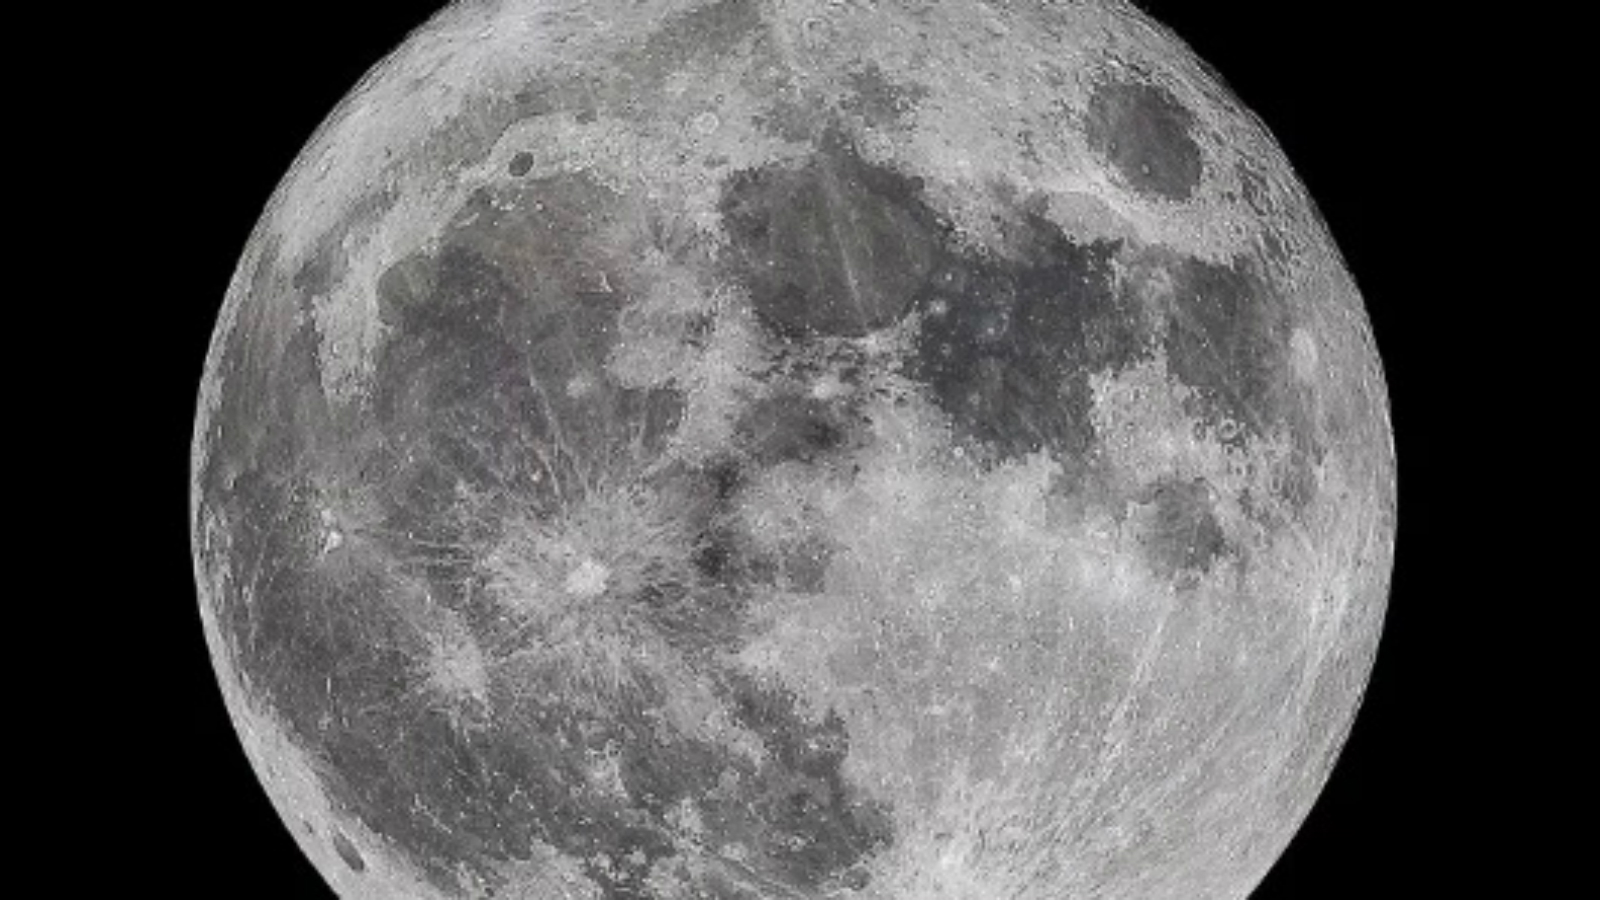 'Super Worm Moon' rises on first day of Spring